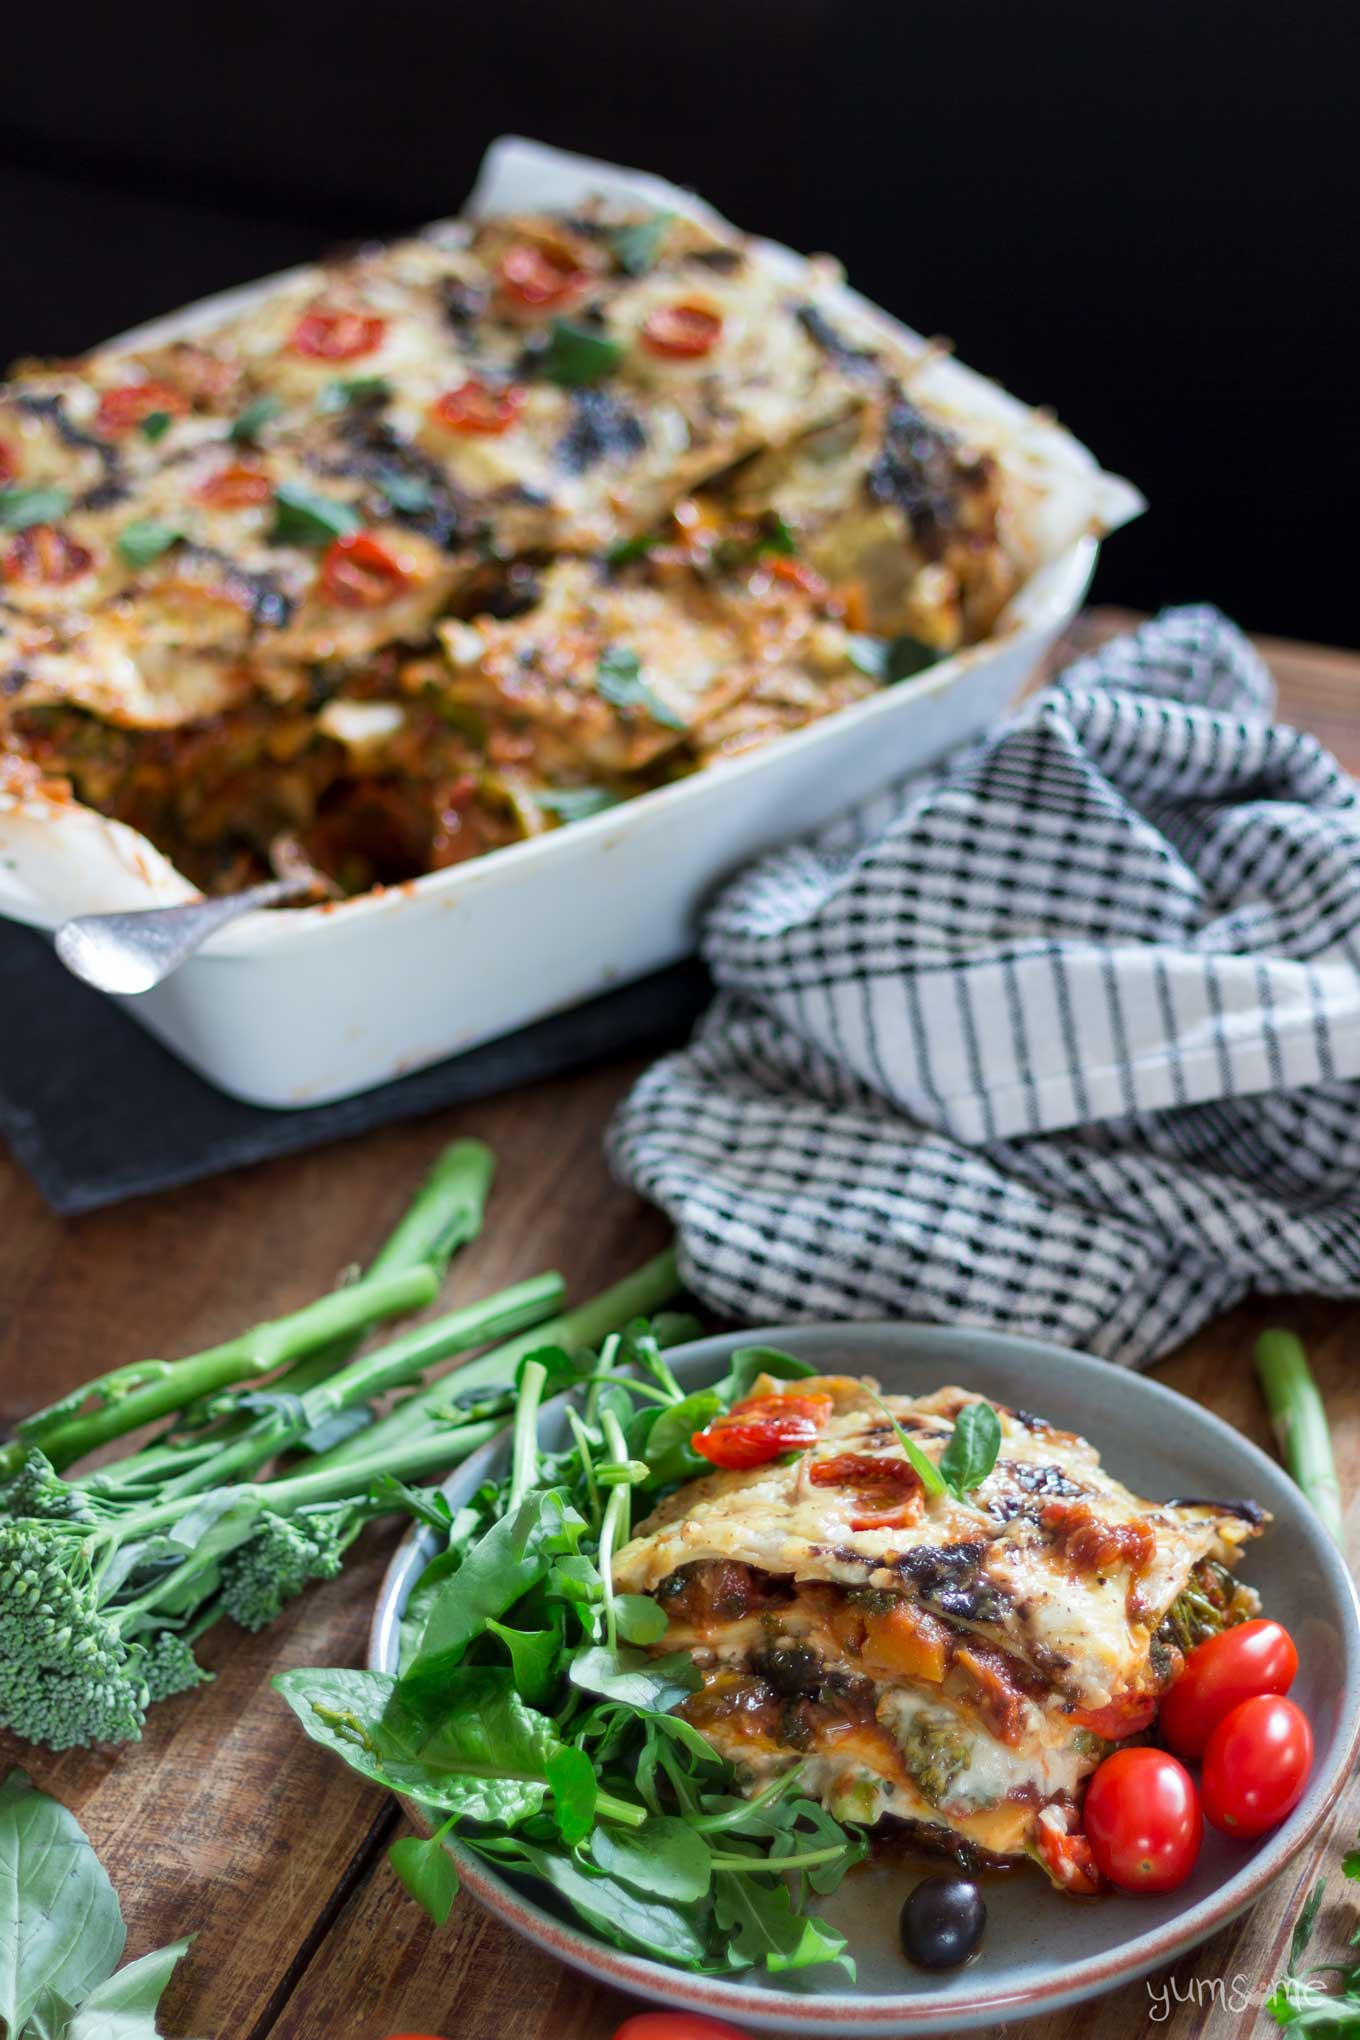 a large dish, plus a plate of loaded vegan lasagne, with green salad and tomatoes, plus a tea towel | yumsome.com